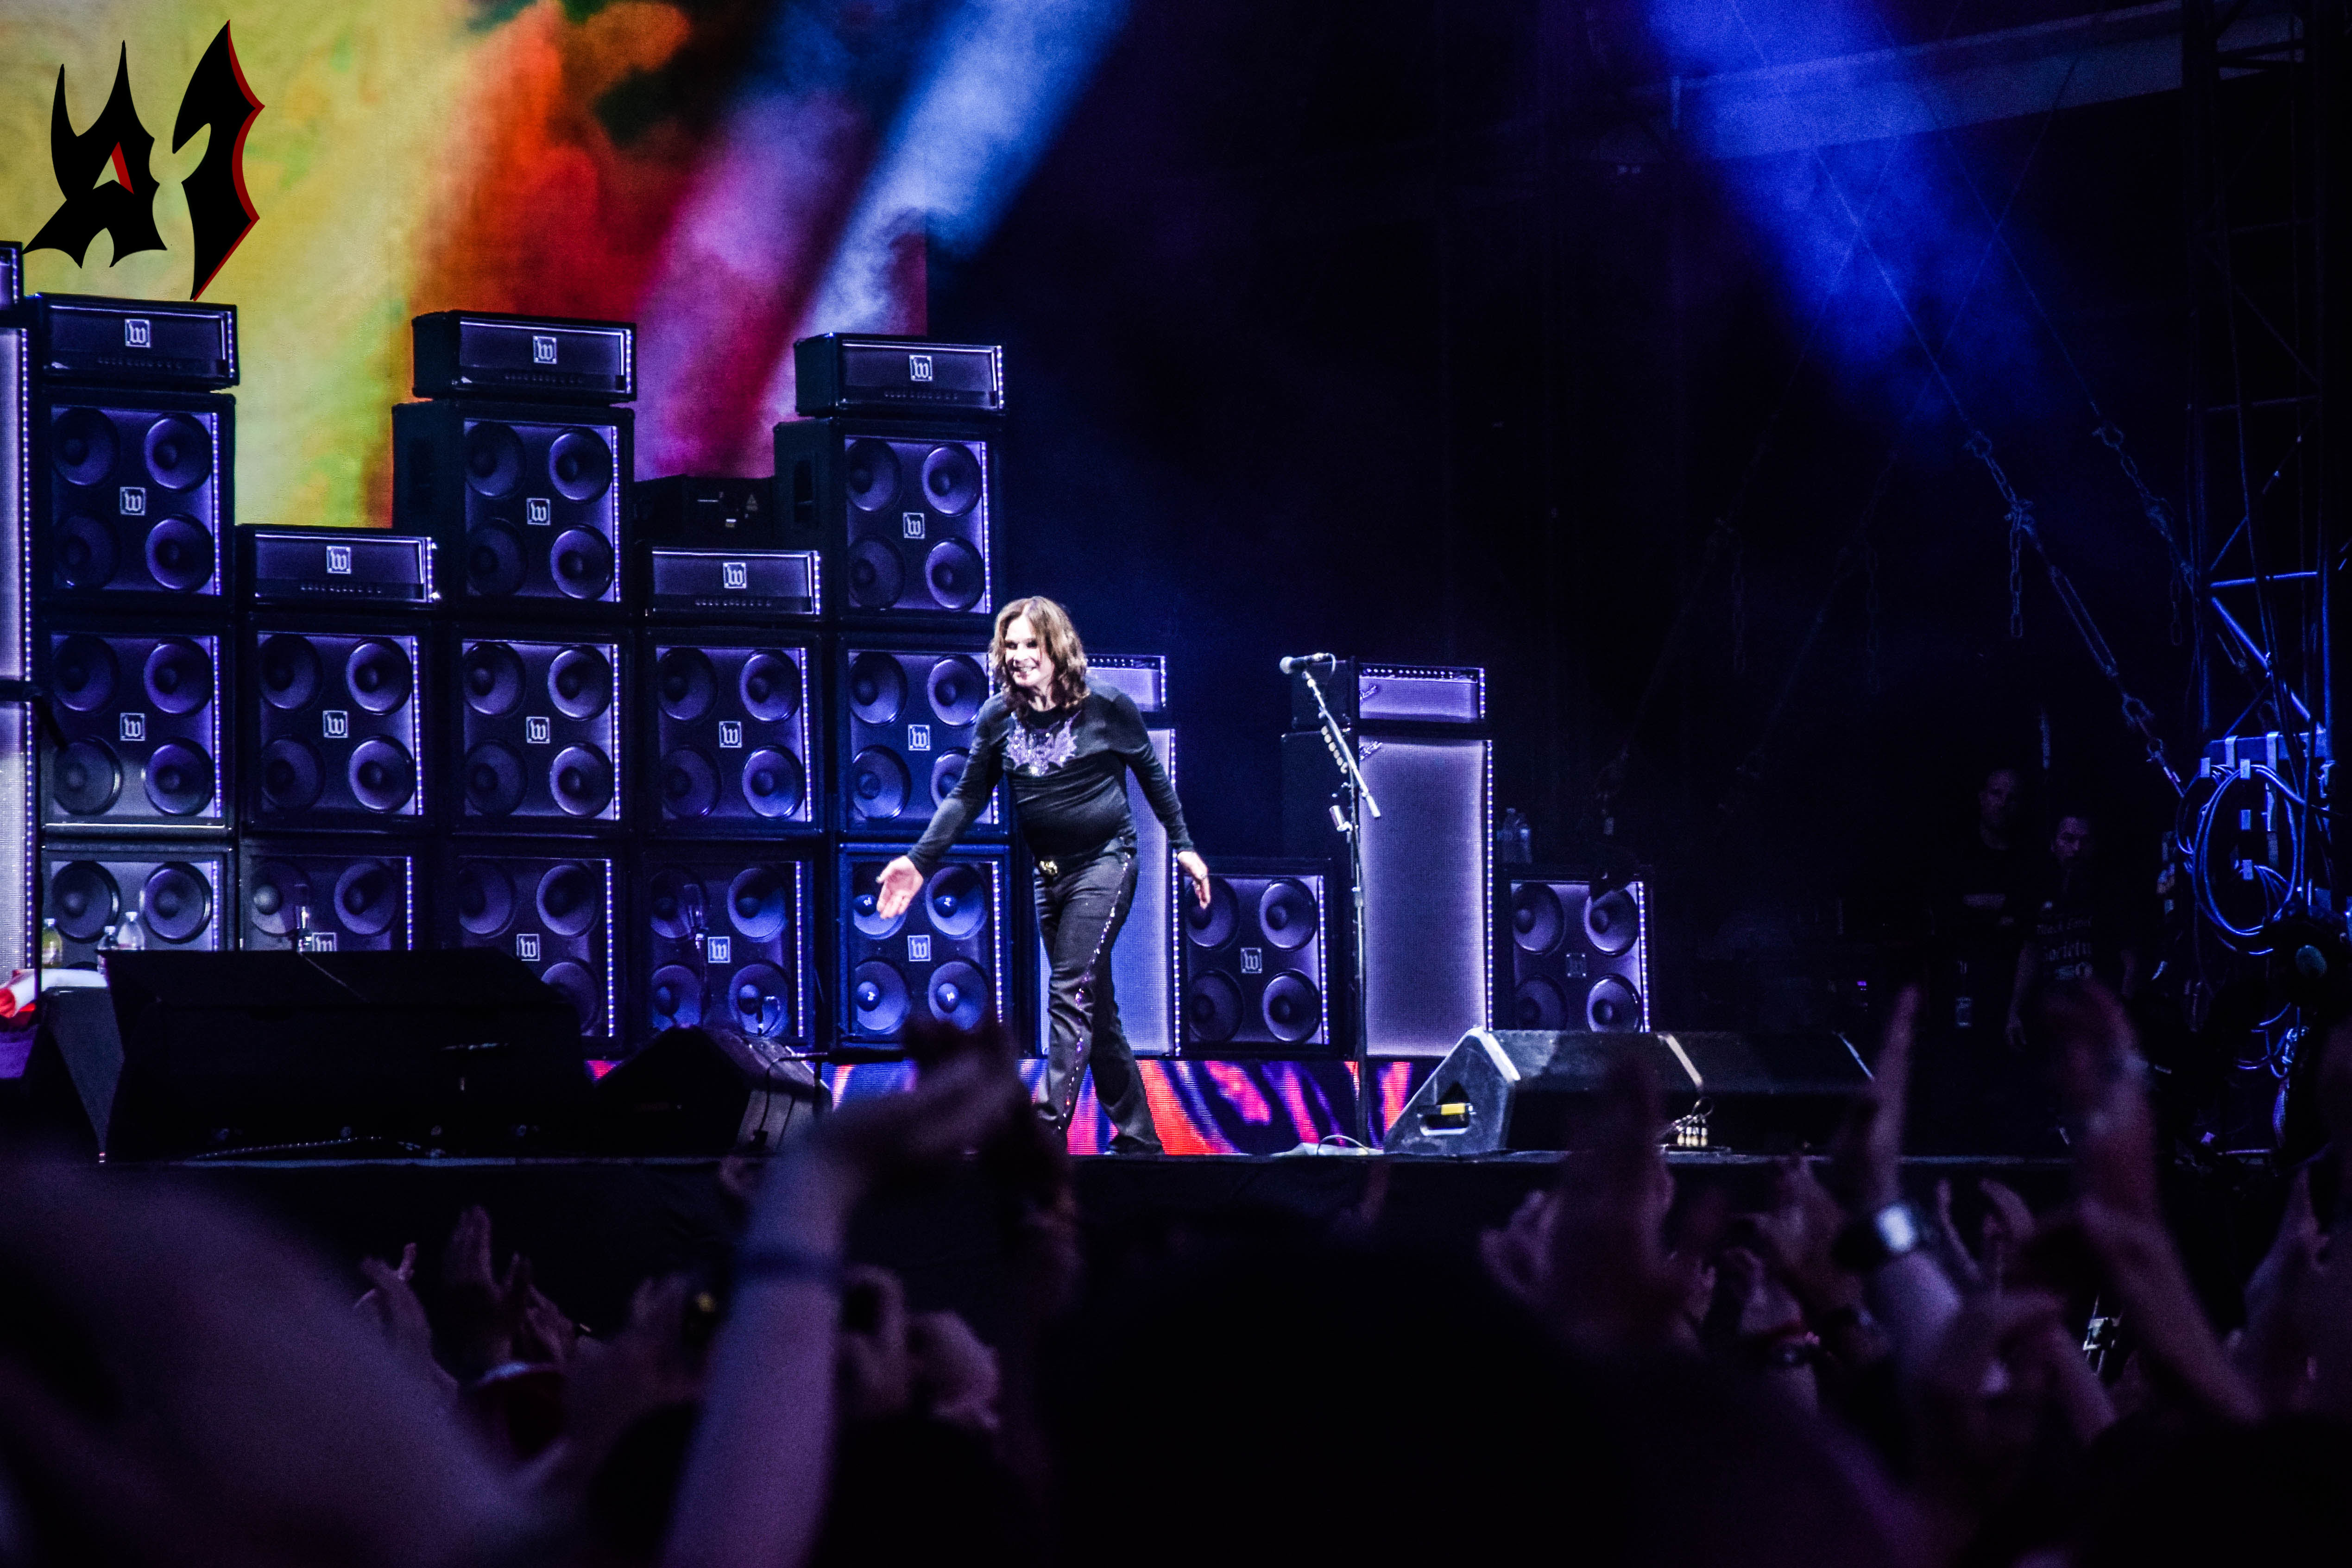 Donwload 2018 – Day 1 - Ozzy Osbourne 6